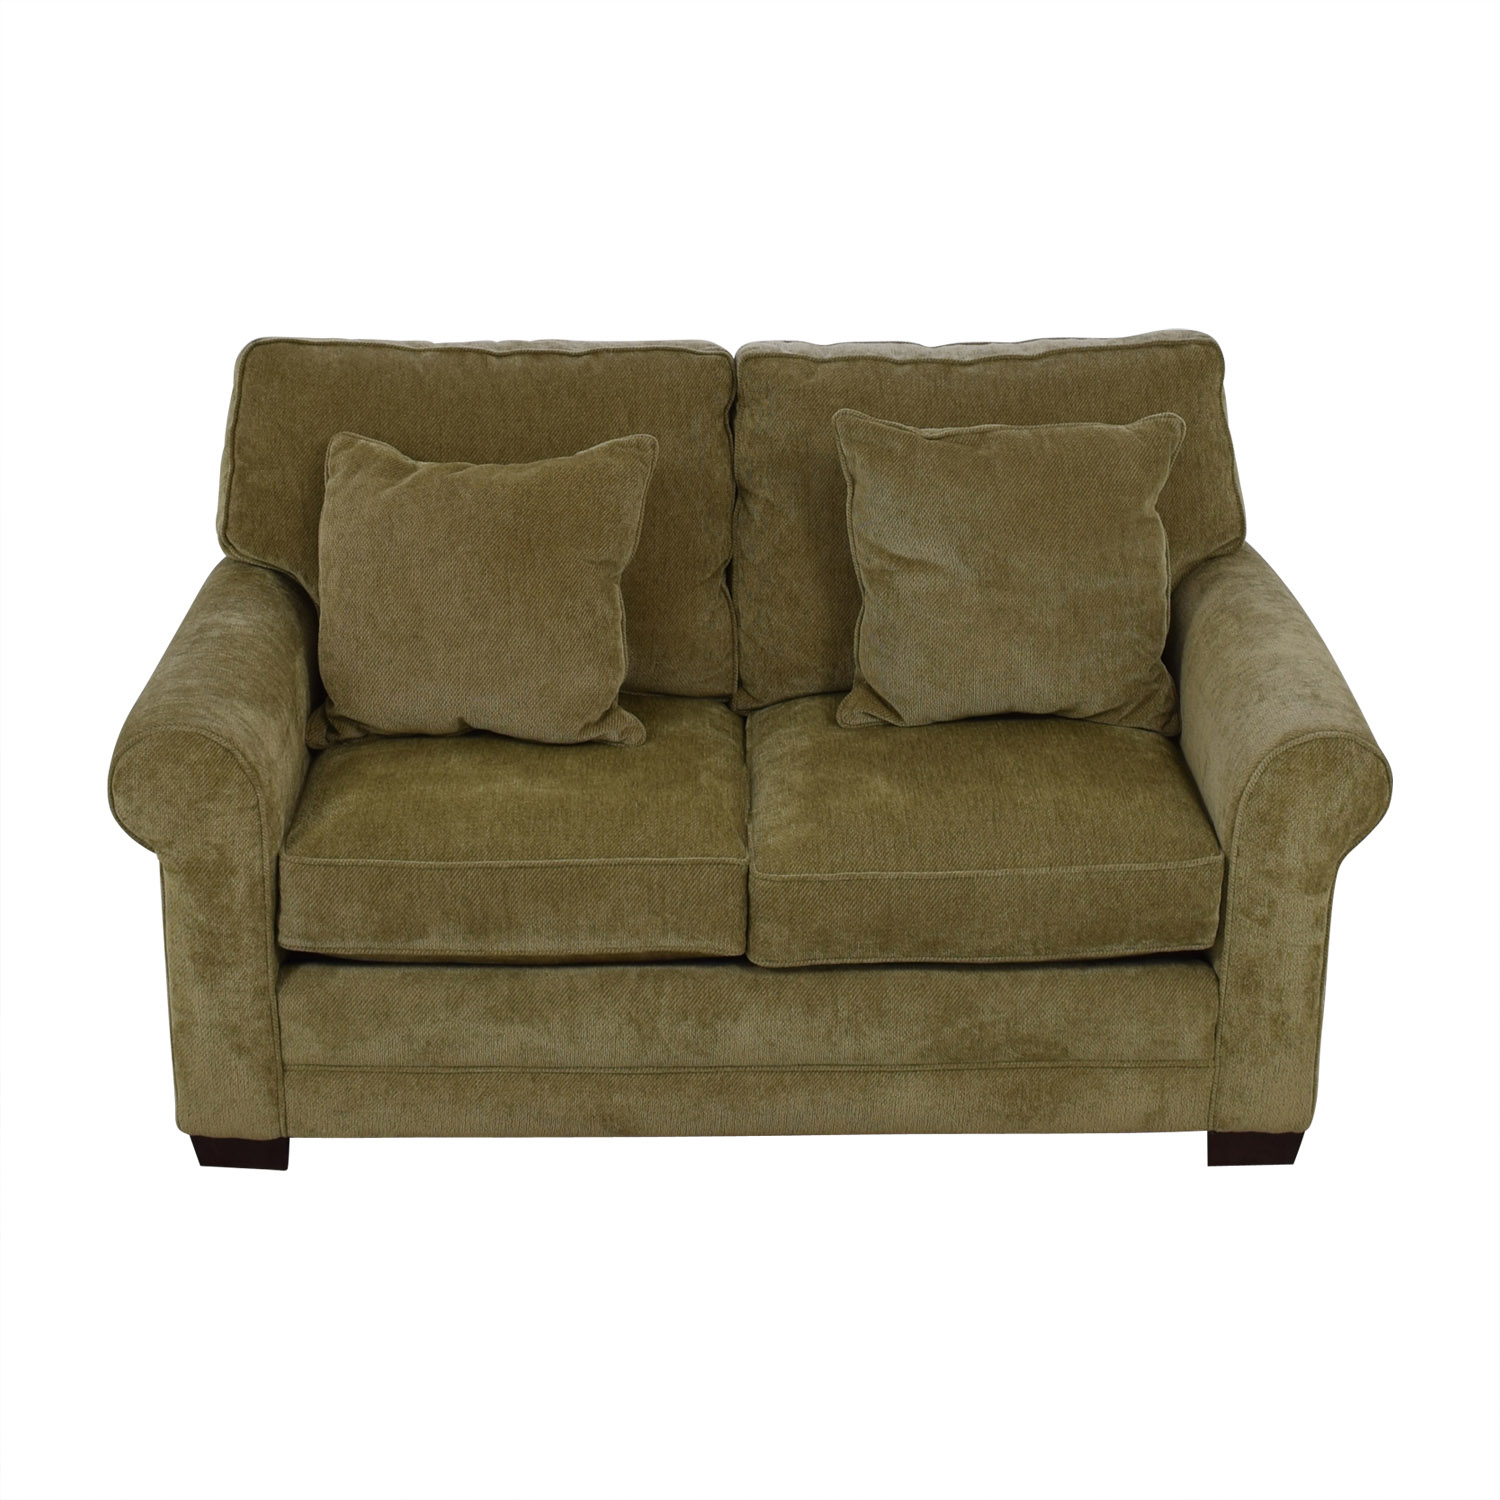 Raymour & Flanigan Raymour & Flanigan Gray Two-Cushion Love Seat discount